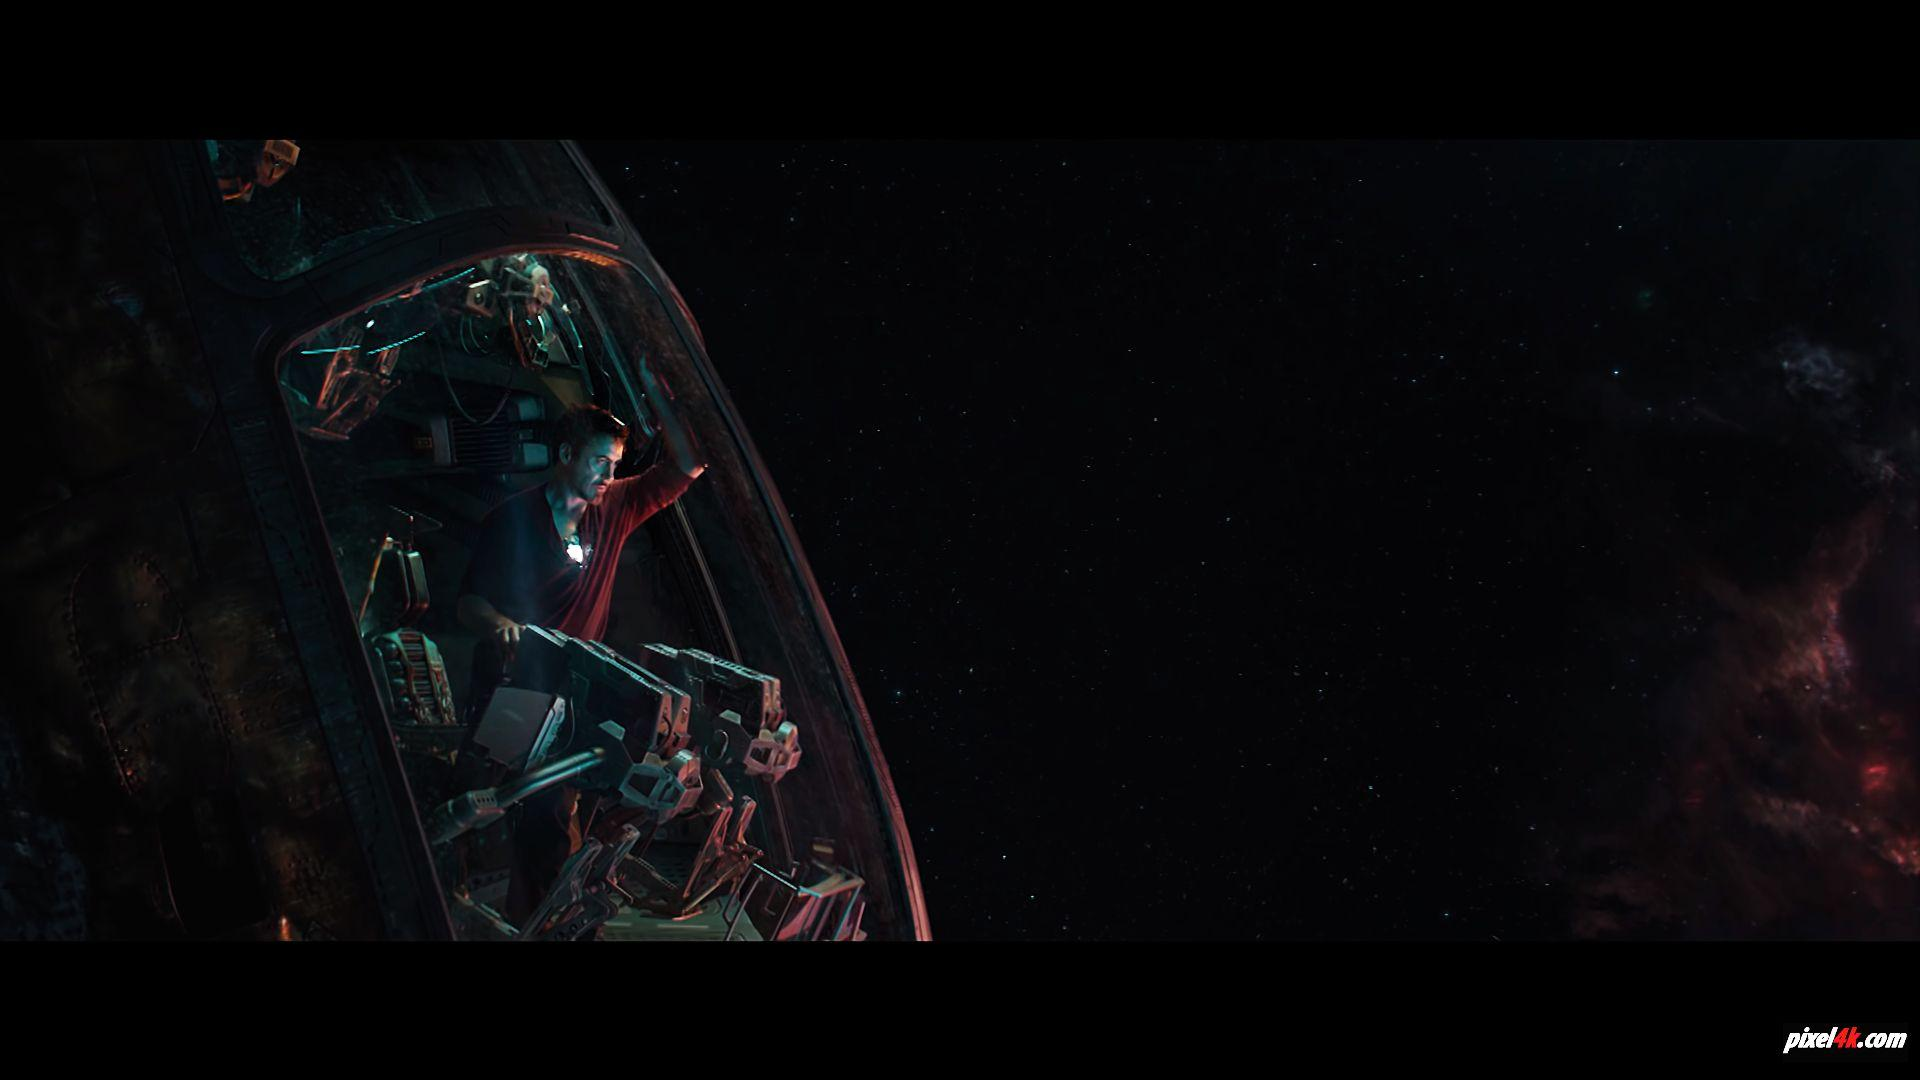 Avengers 4 End Game wallpapers Tony Stark In Space wallpapers